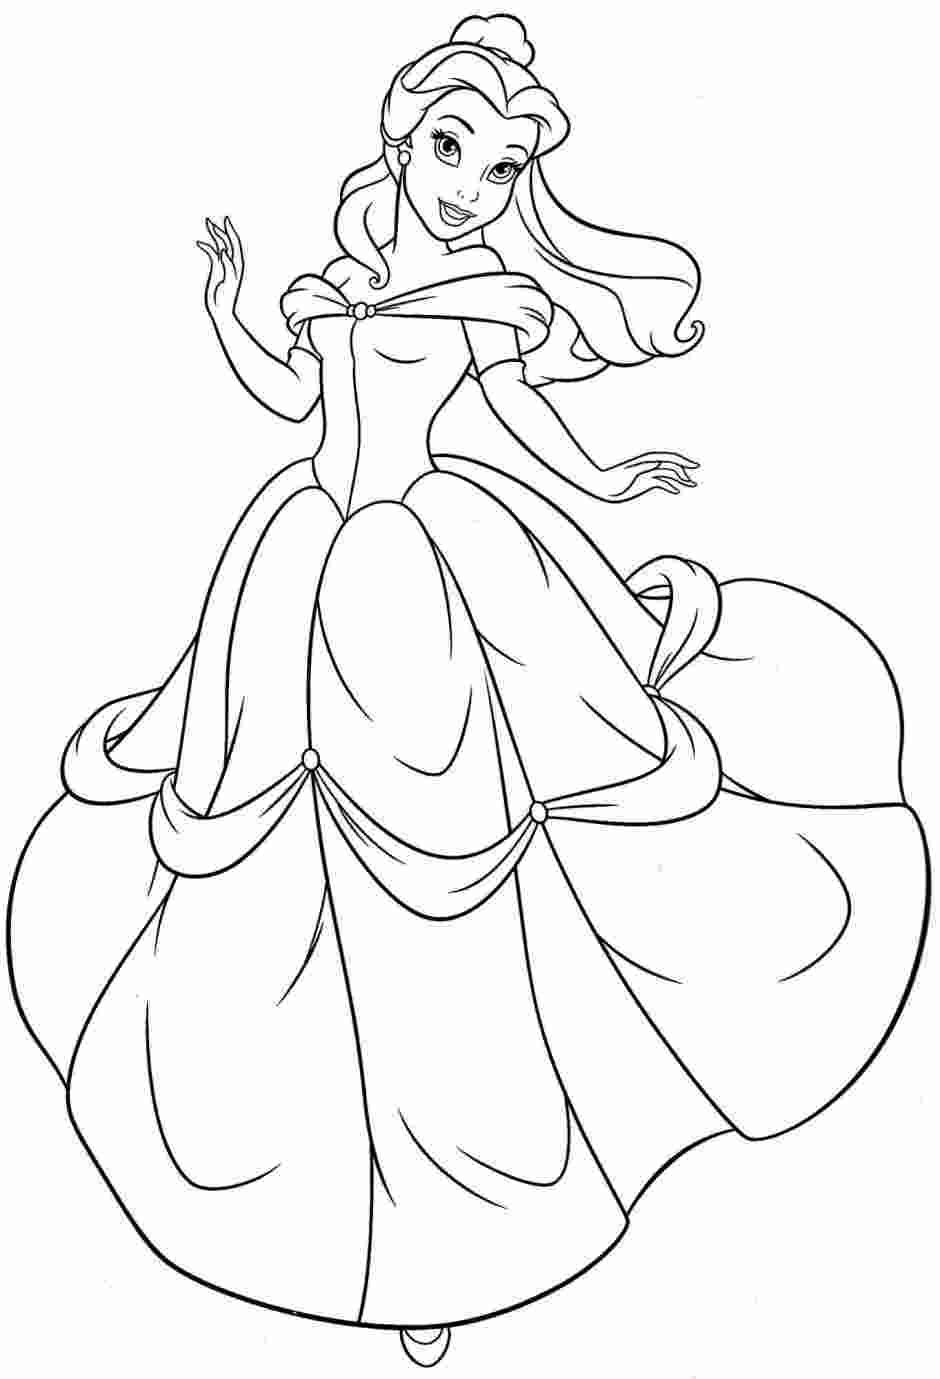 coloring pages of princess belle disney princess belle coloring pages princess of pages belle coloring